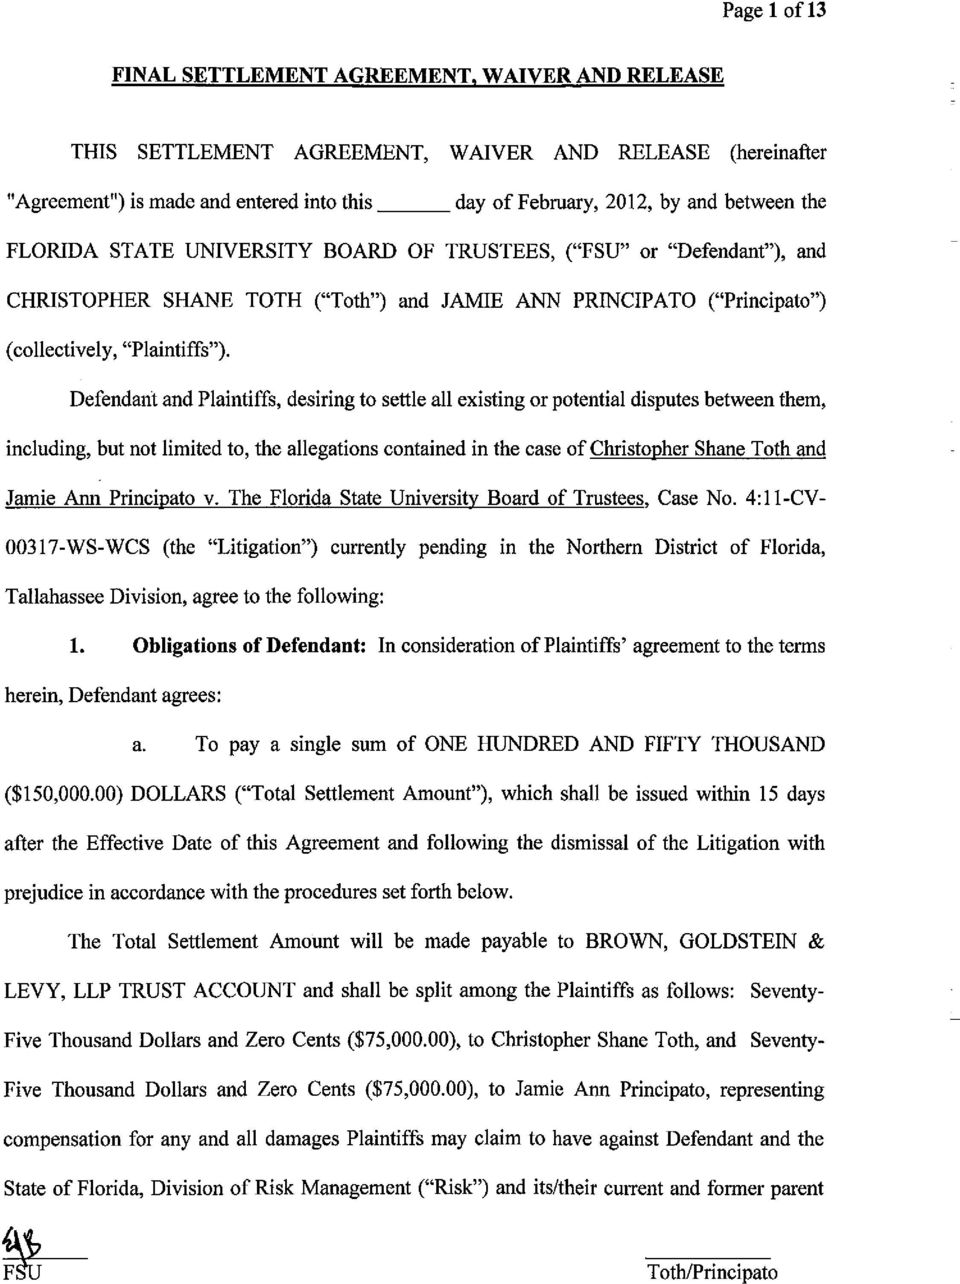 Defendant and Plaintiffs, desiring to settle all existing or potential disputes between them, including, but not limited to, the allegations contained in the case of Christopher Shane Toth and Jamie